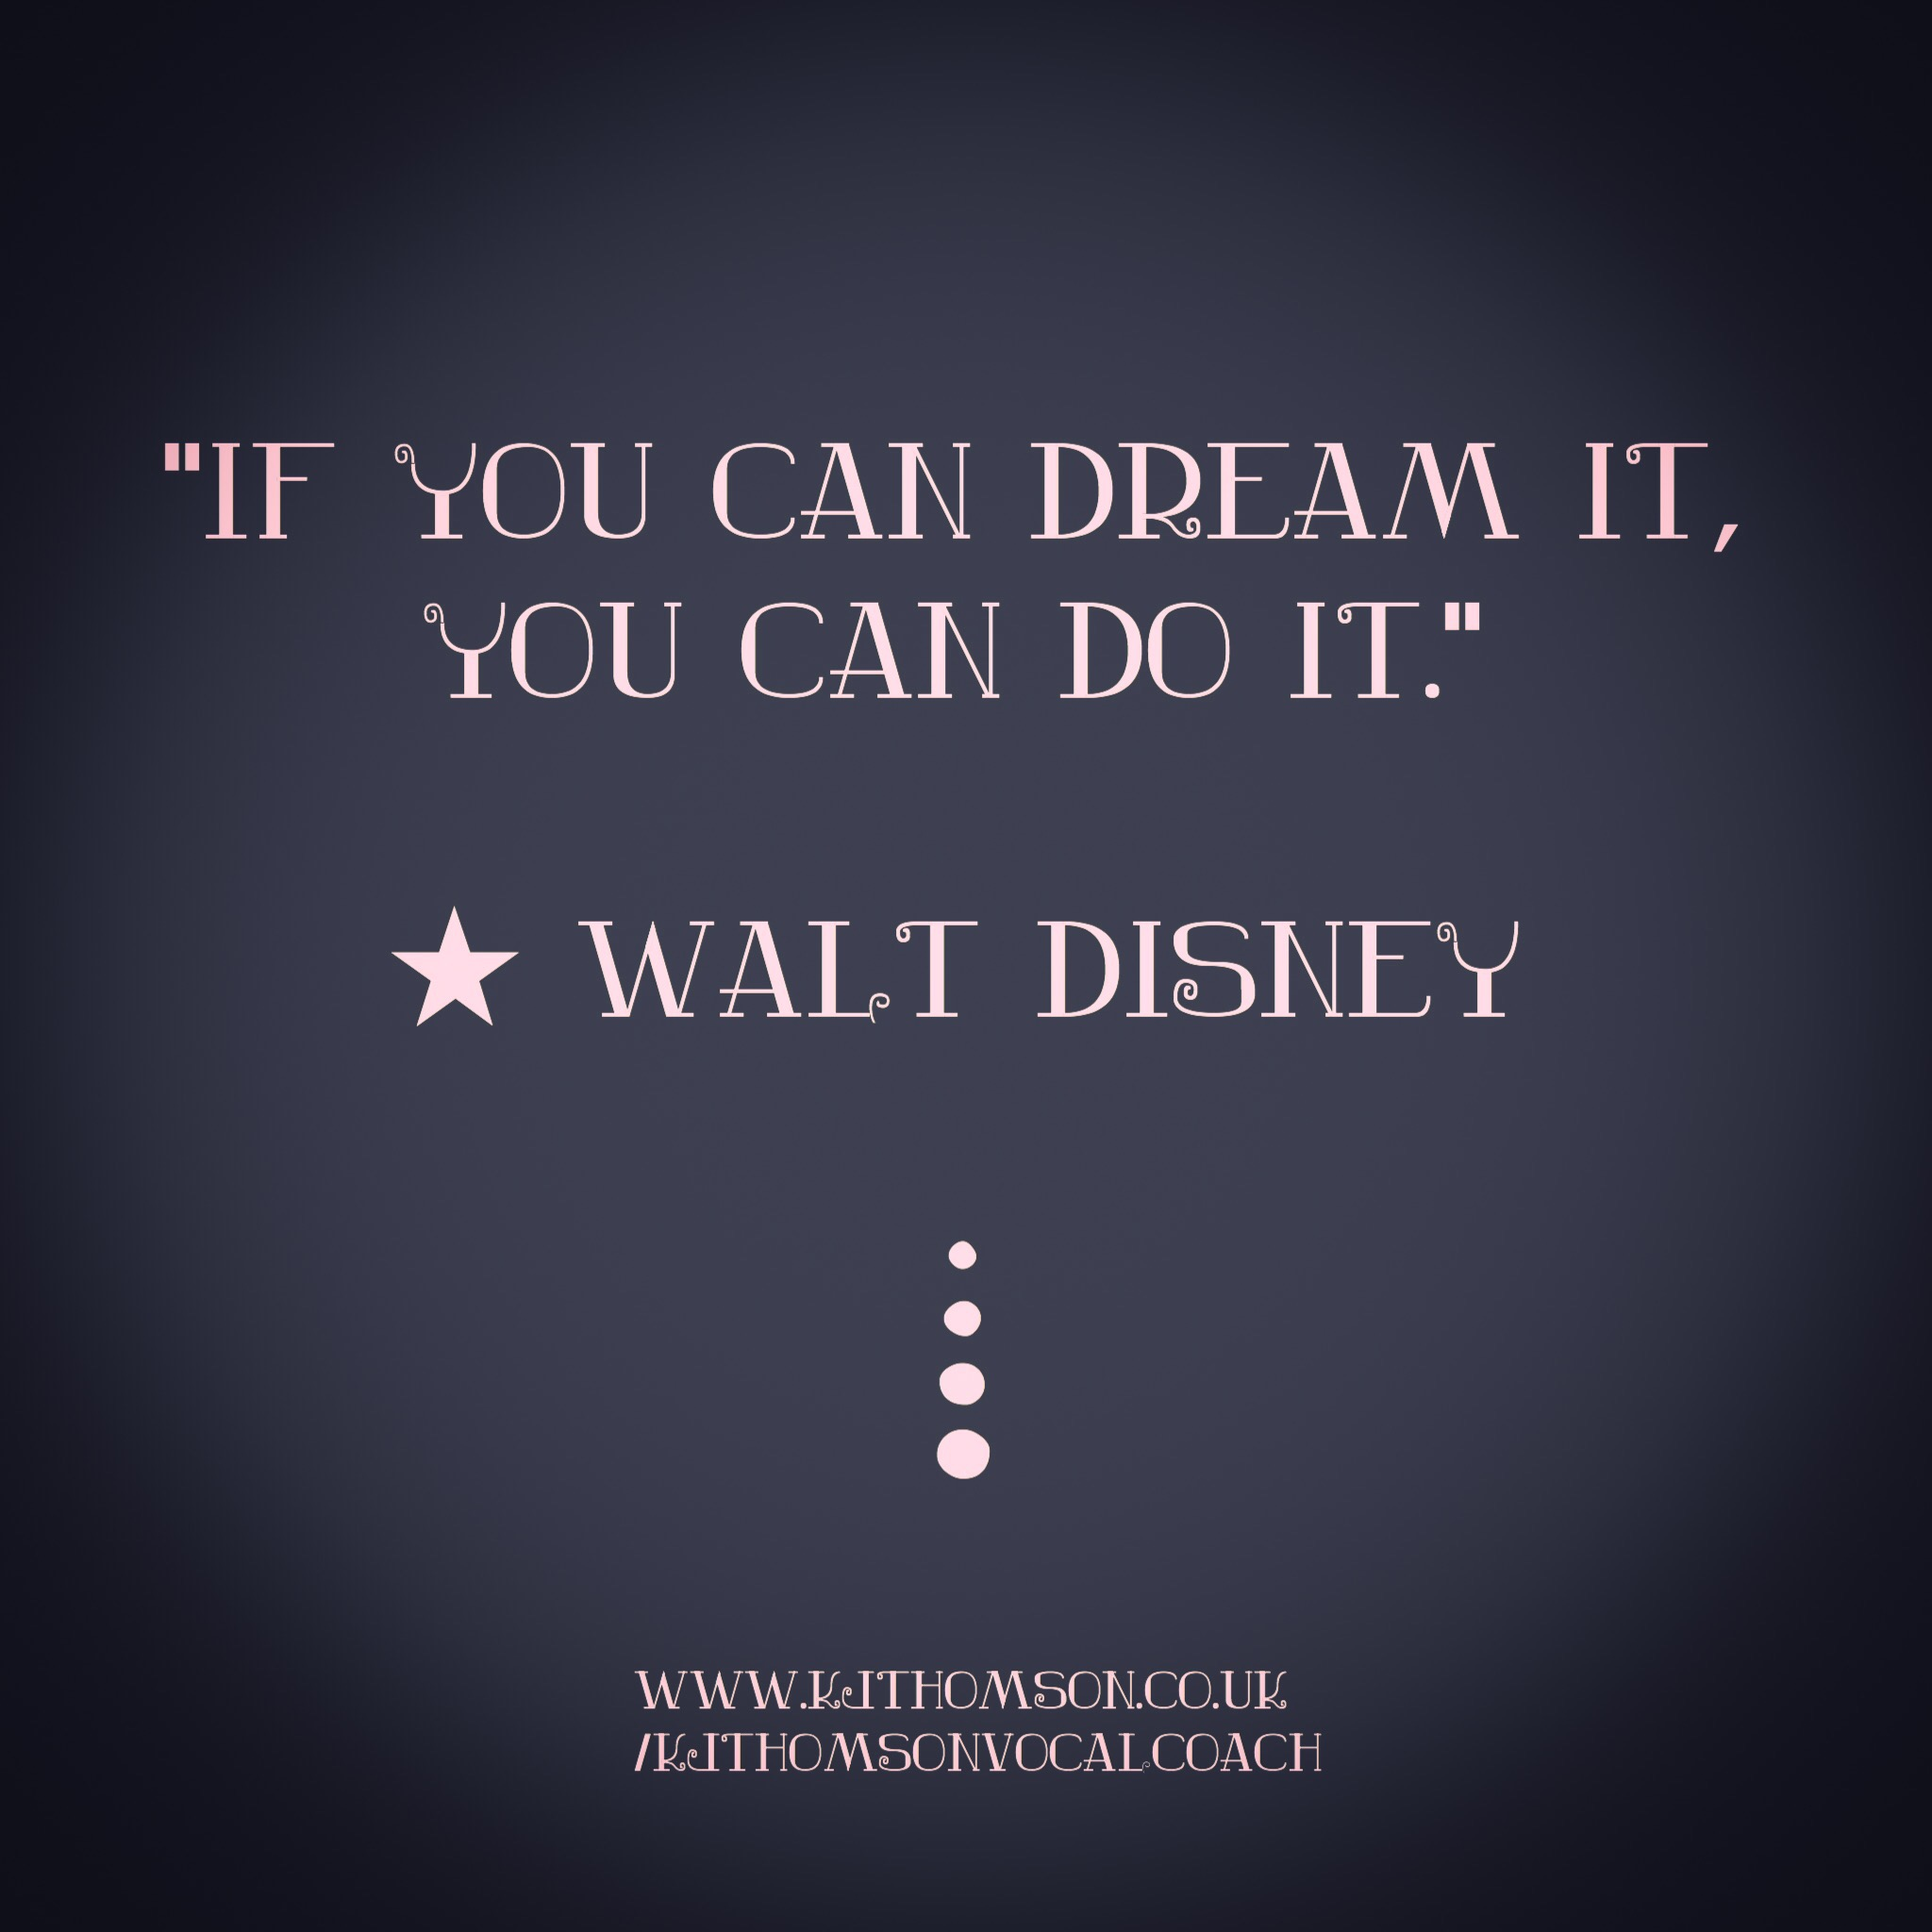 Kate Thomson Singing & Vocal Coach.  Disney Quote.